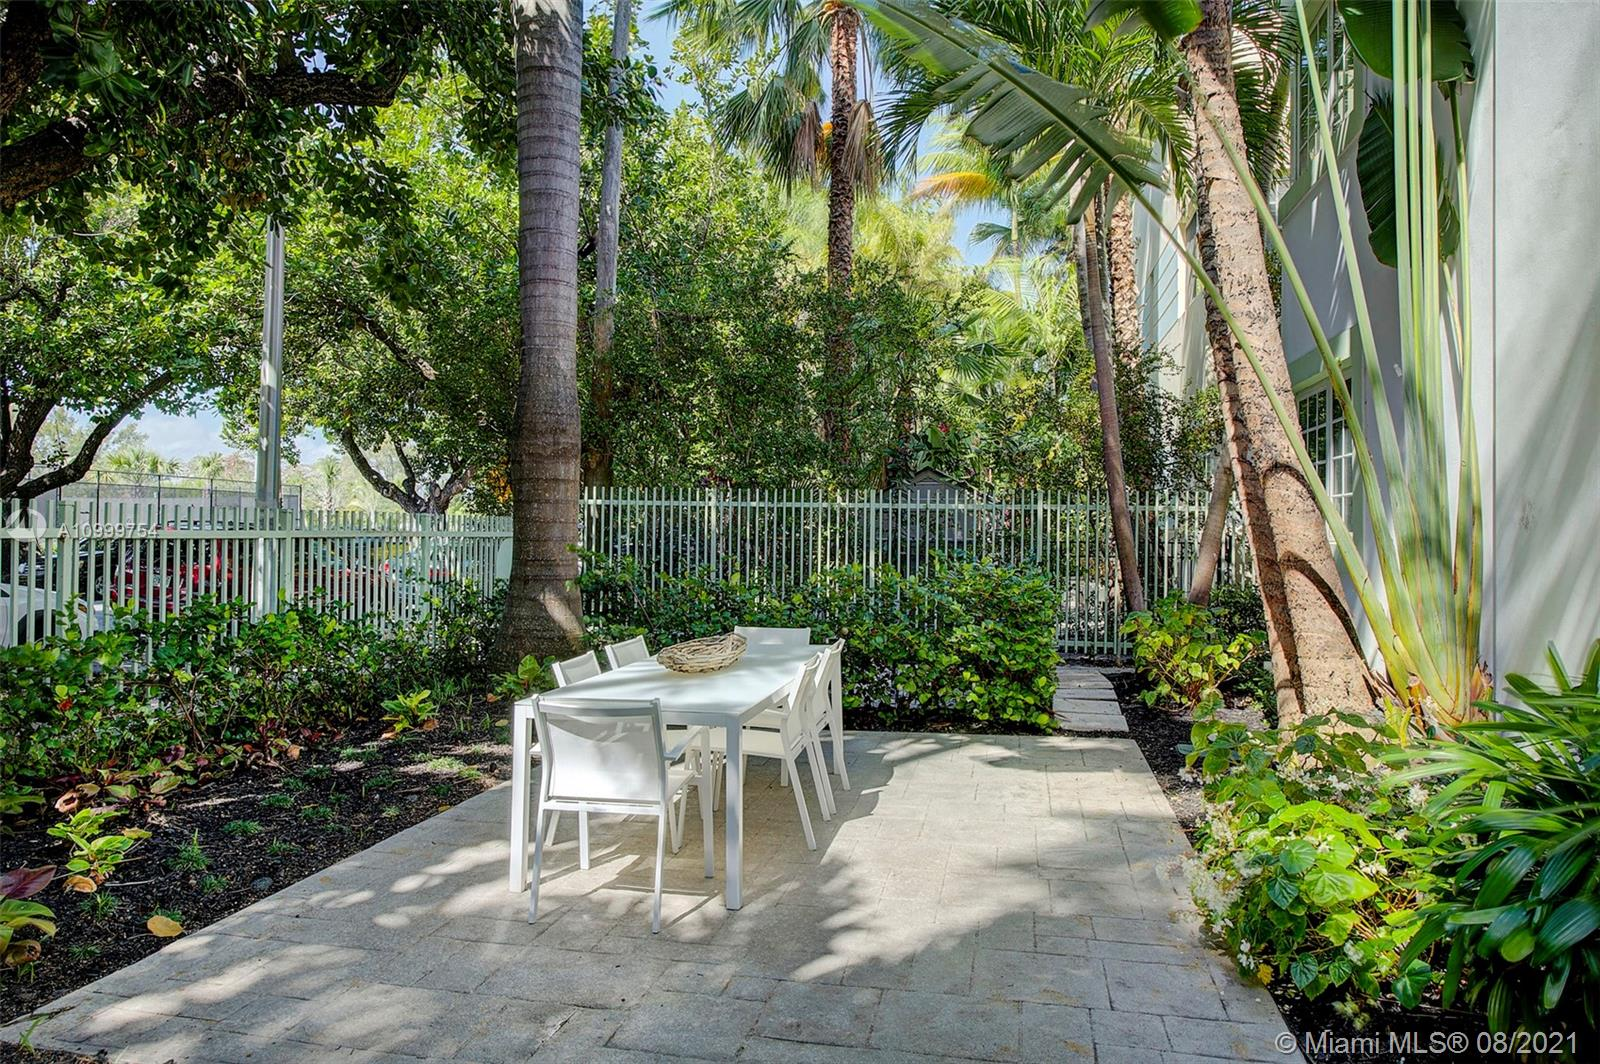 This is a very unique Key West Style building with interior landscaped garden. Only five blocks from the ocean.  This Arcadia Condo already passed the 40 year certification, boutique type, two stories high and a total of 20 units. Building has a new roof, new plumbing and electrical, hurricane windows, new paint and secured entrances.  Turnkey unit with central air, furnished and in the heart of South Beach.  Located on a quiet, historic, tree-lined avenue across from Flamingo Park. Walking distance to the ocean, supermarkets, dog park & Lincoln Road.   HOA Financials are healthy. No assessments.  Parking is available with a residential decal that can be obtained through the city for a small yearly fee.